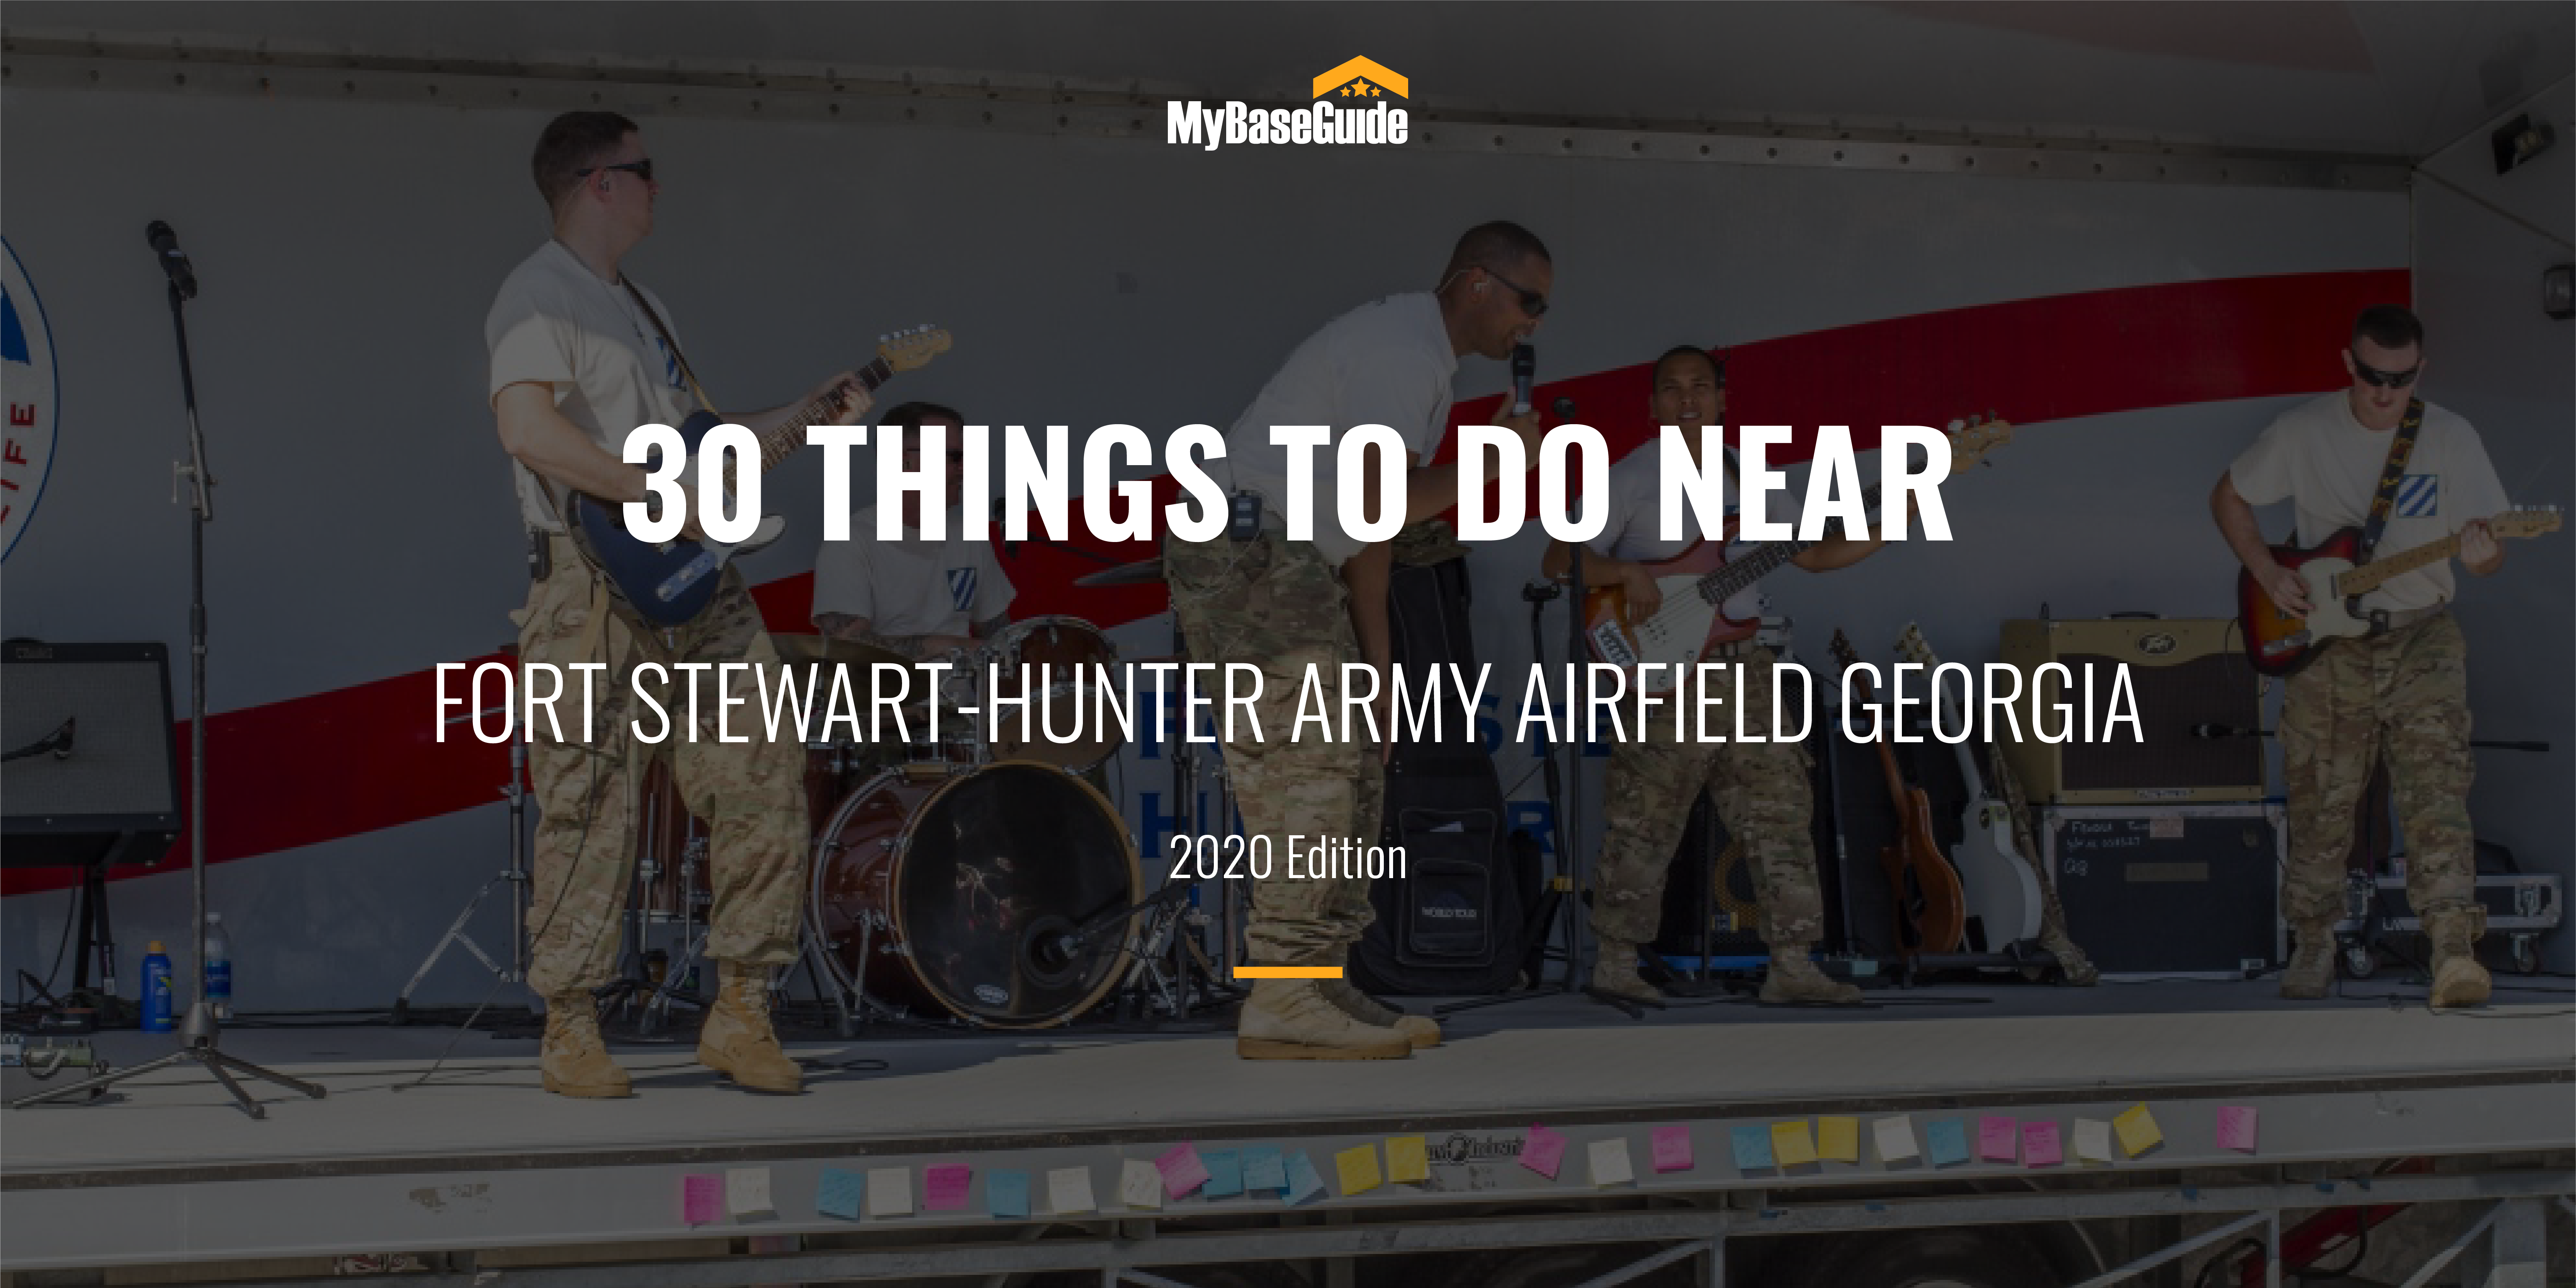 30 Things to Do Near Fort Stewart-Hunter Army Airfield Georgia